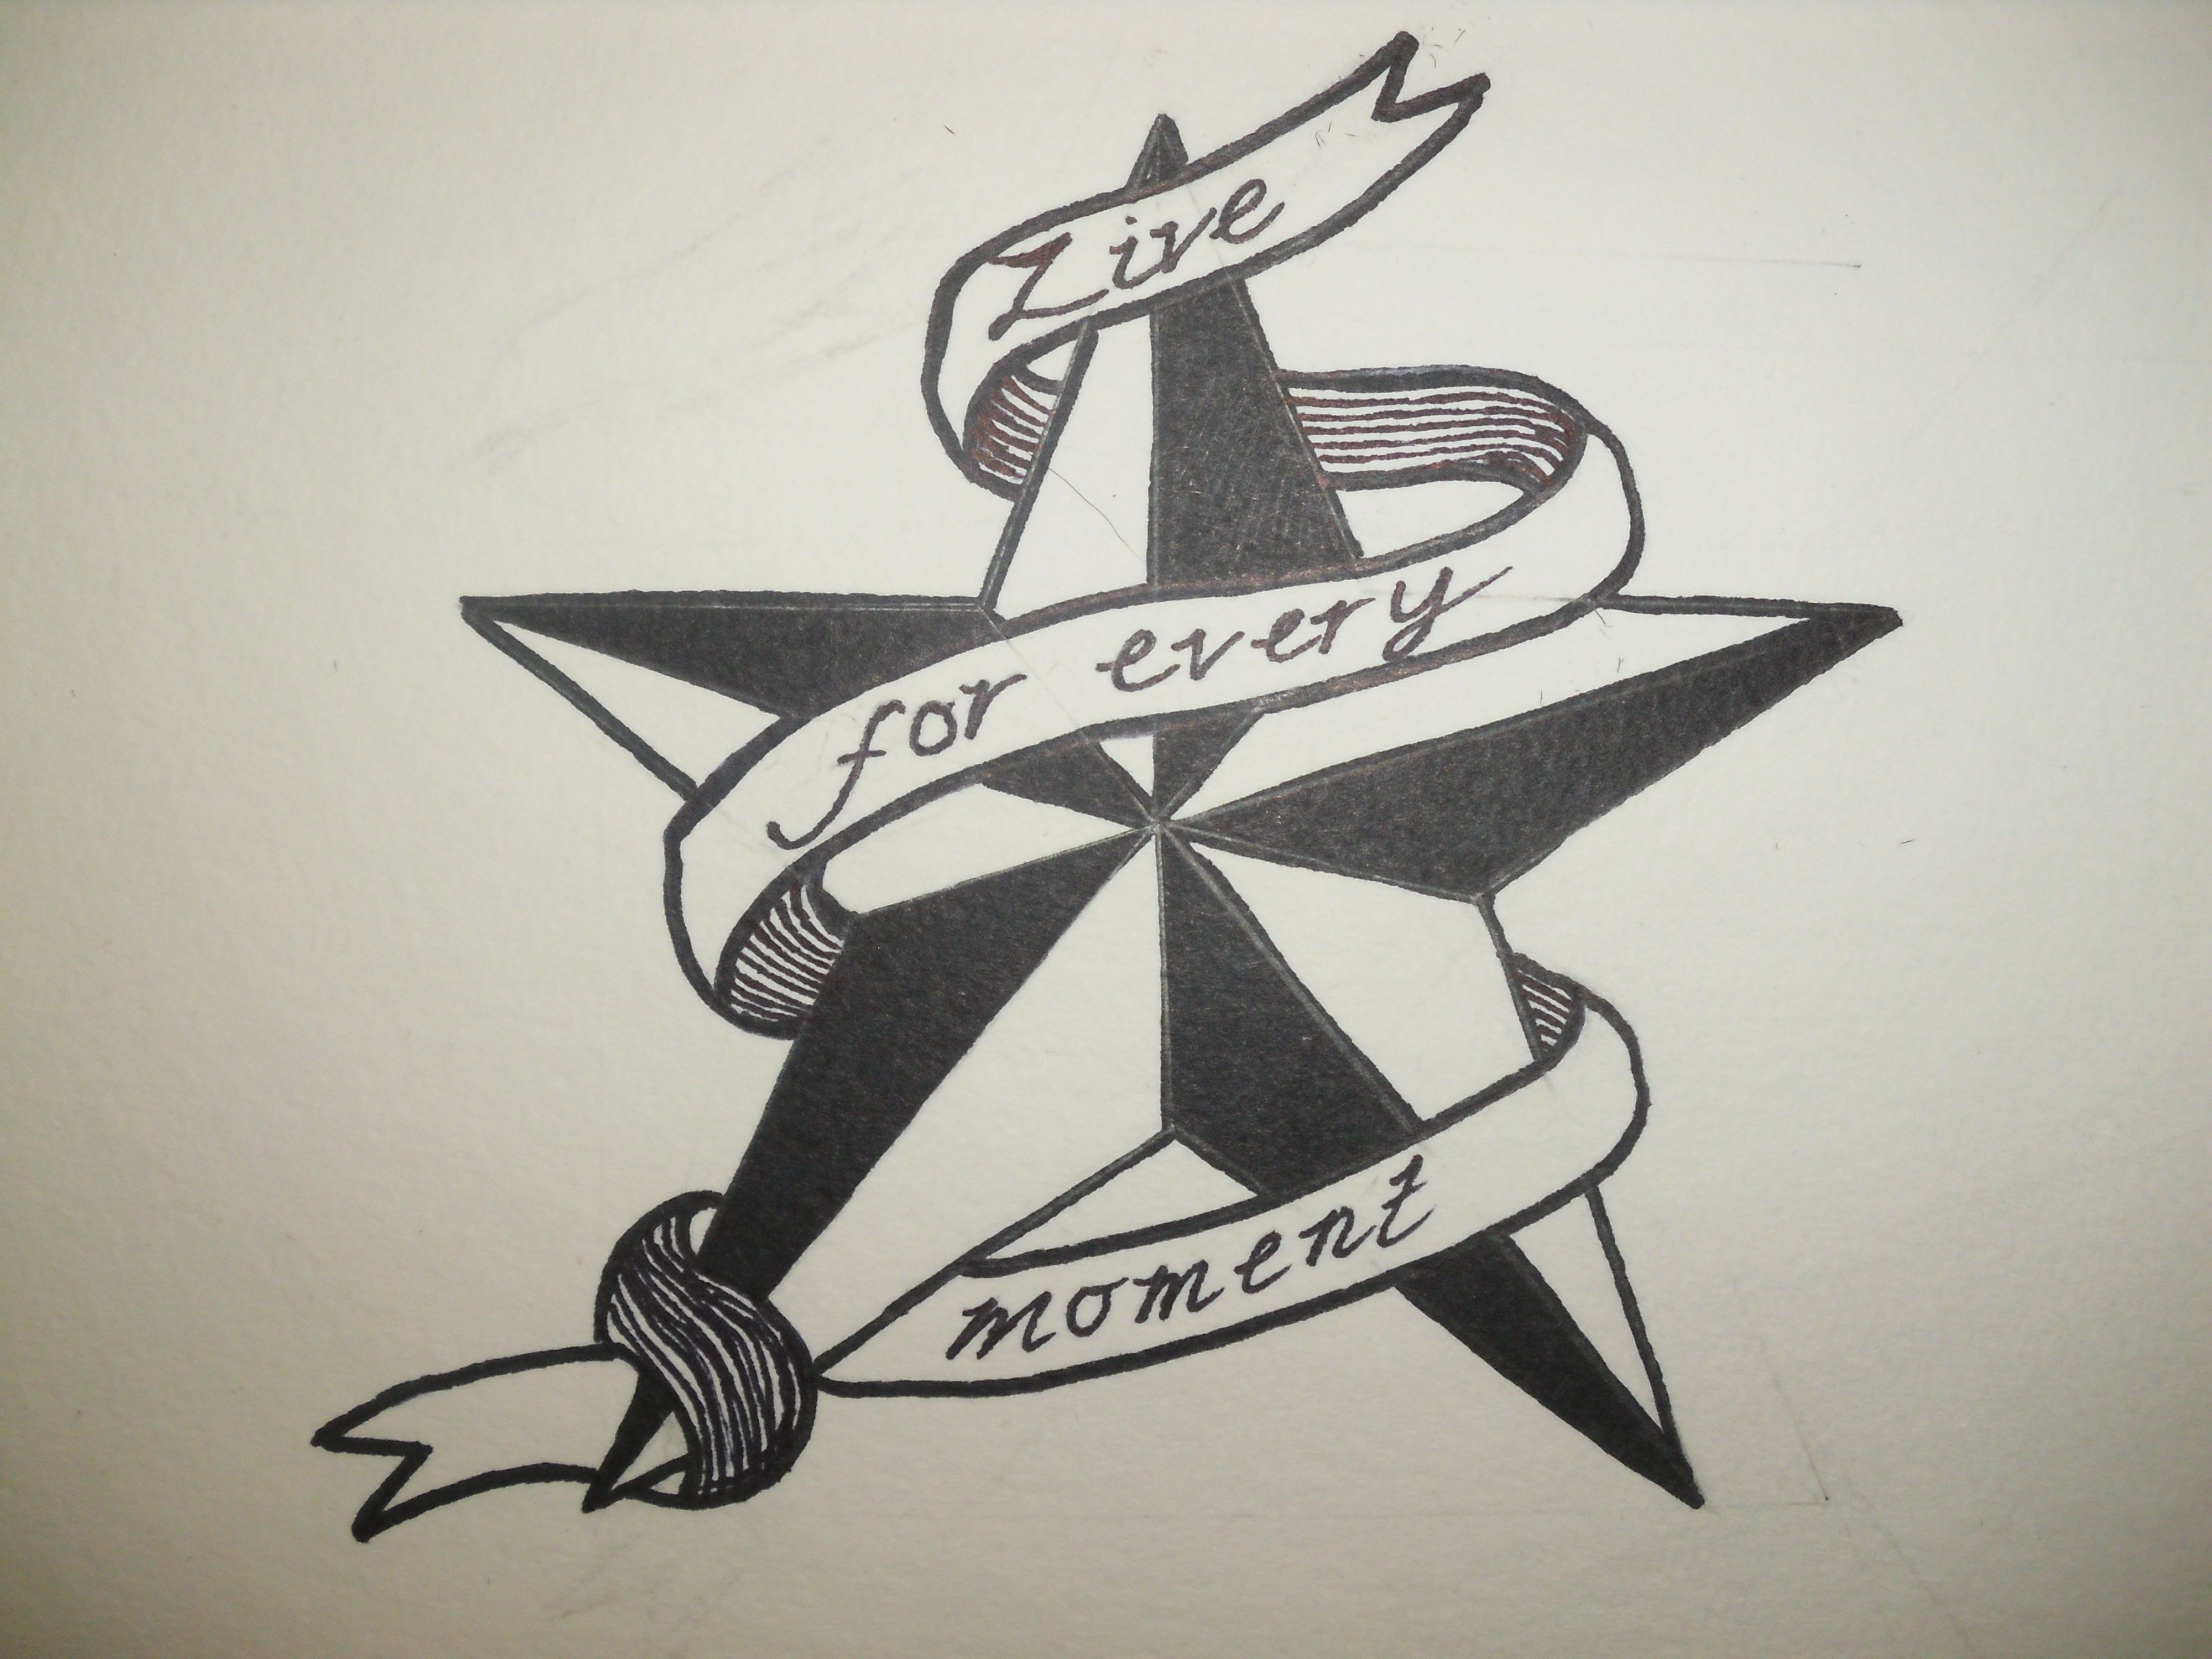 nautica stars with banners - Google Search   Tattoos & piercings ...